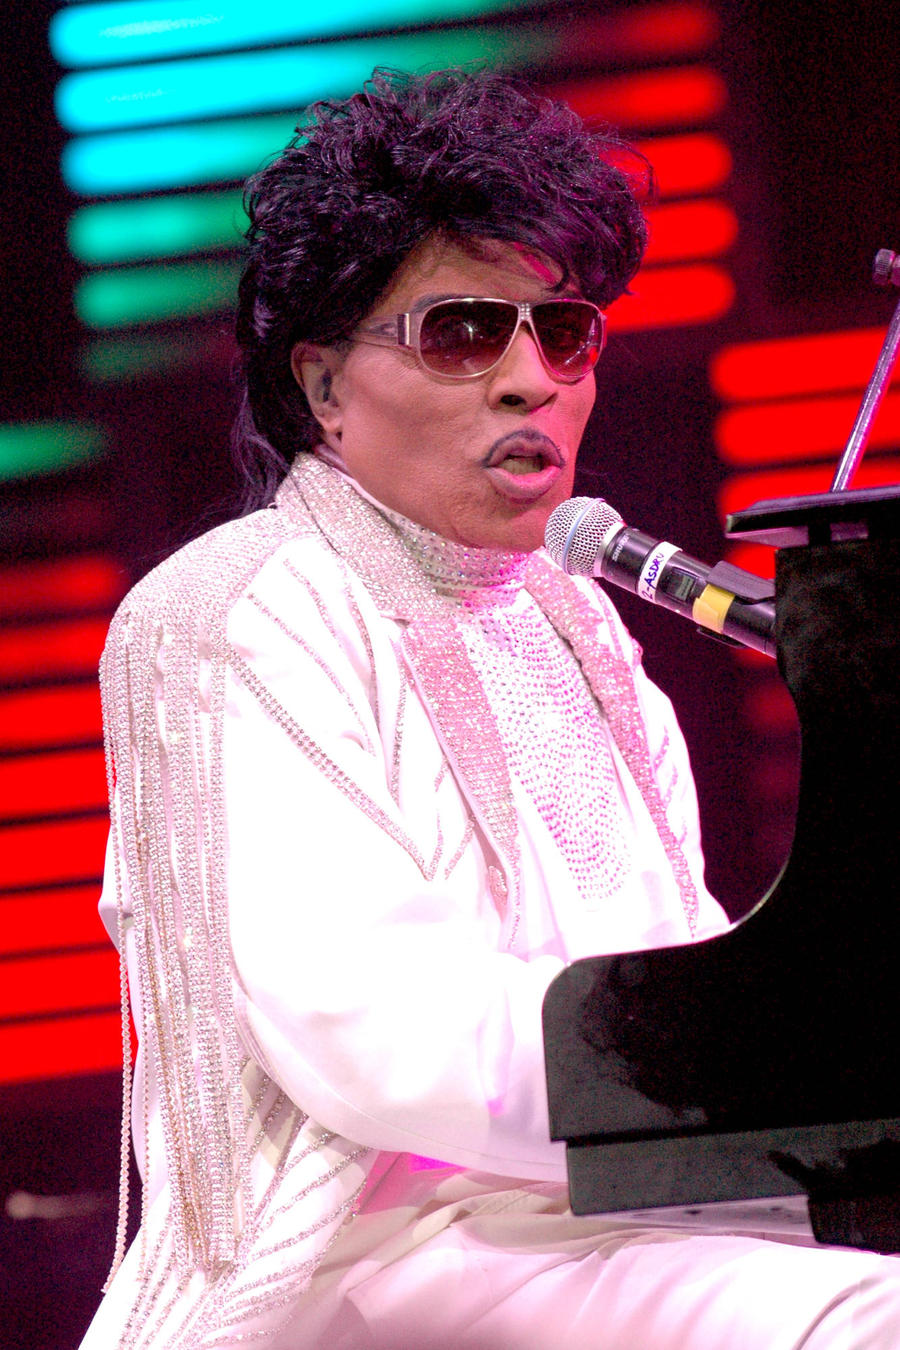 Little Richard Devastated By Death Of Friend Chuck Berry